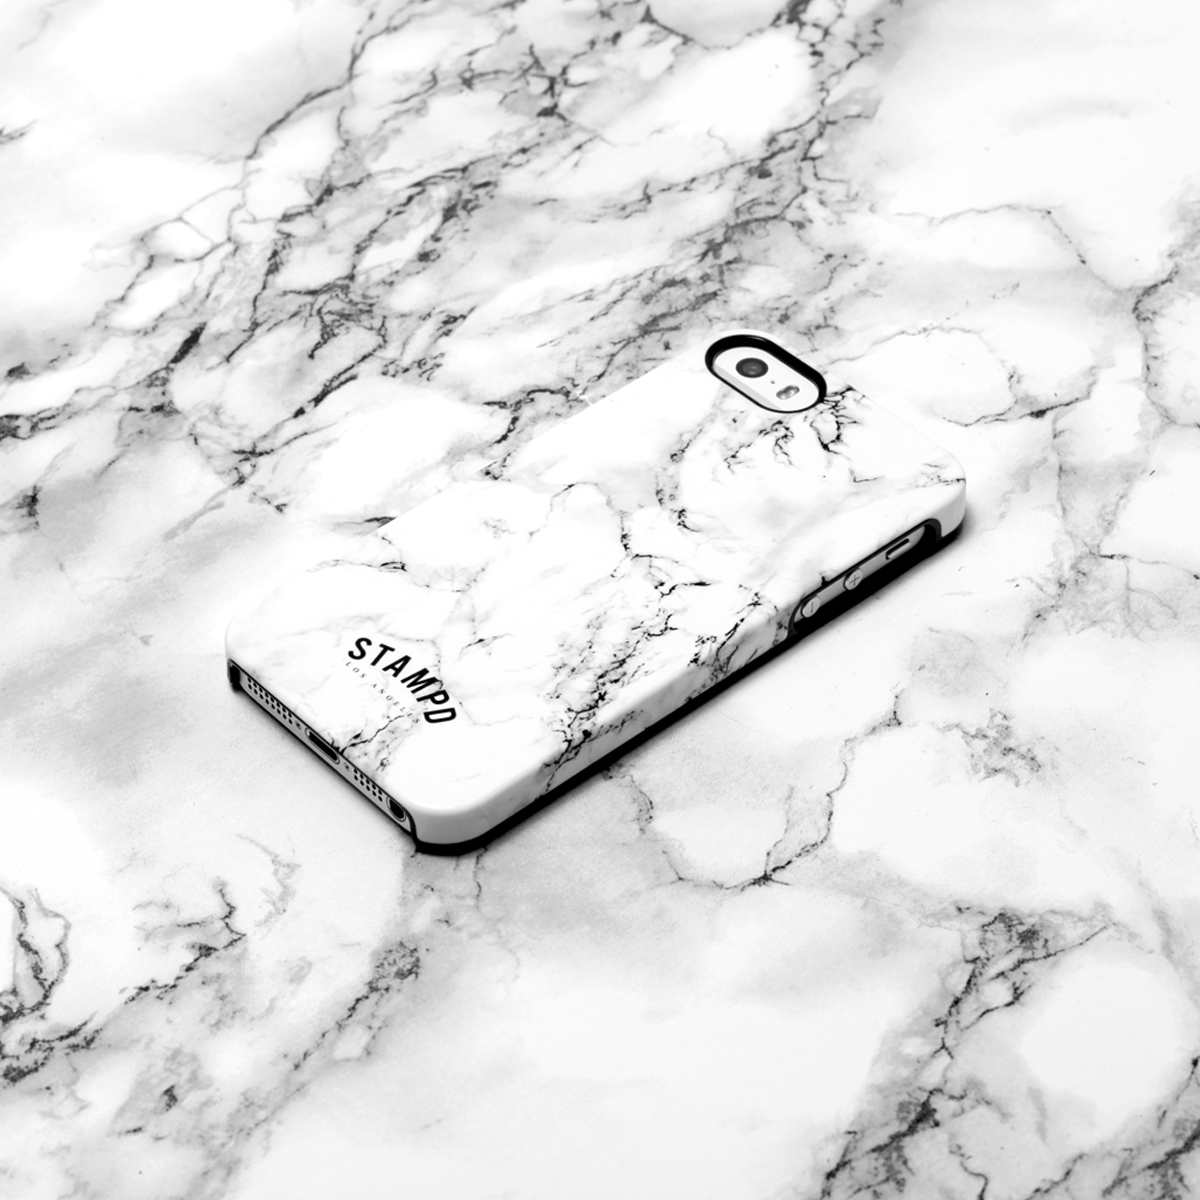 Amazing Wallpaper Marble Case - marble1  Collection_183925.jpg?w\u003d1024